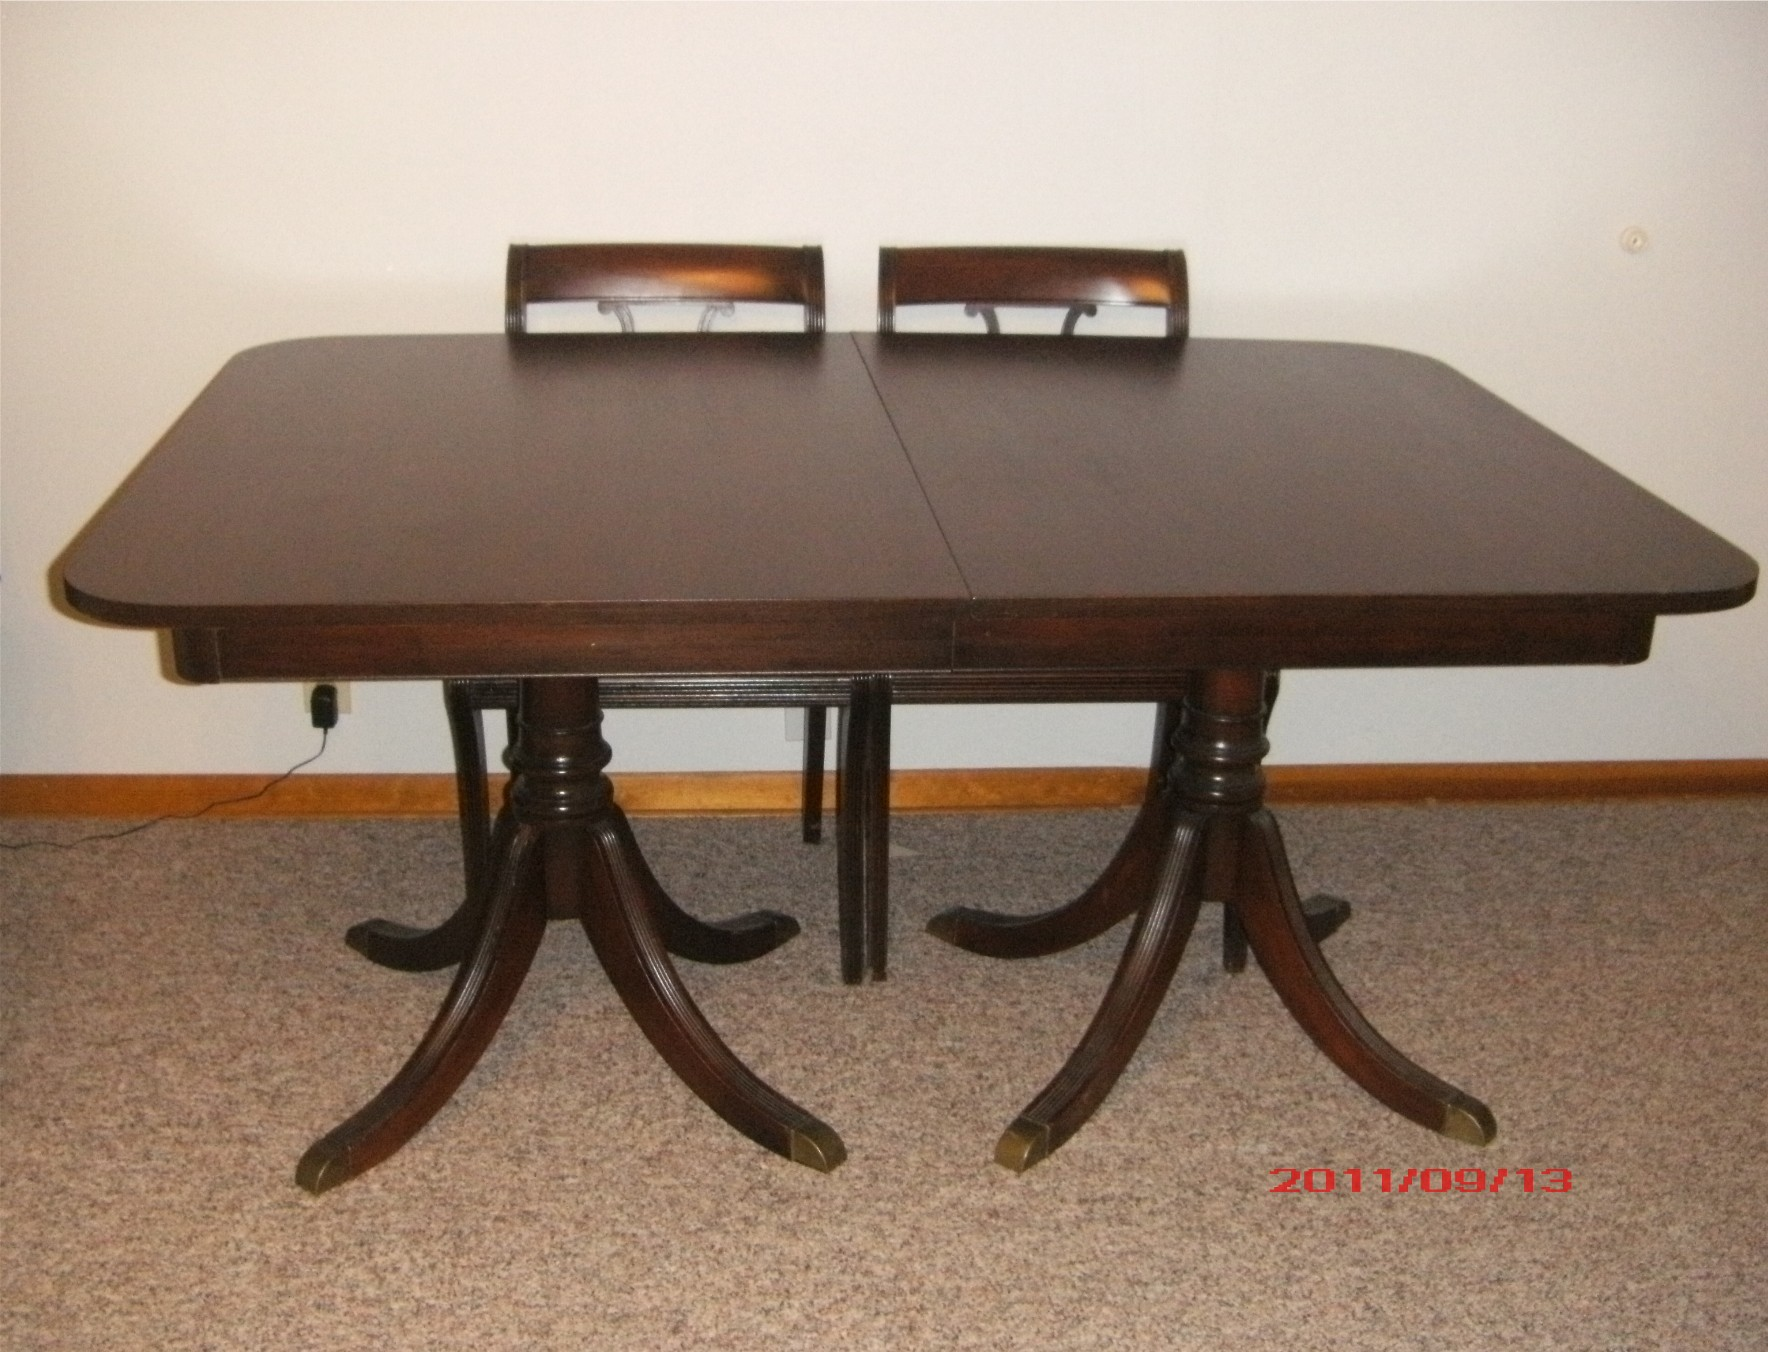 1940s Duncan Phyfe Dining Table